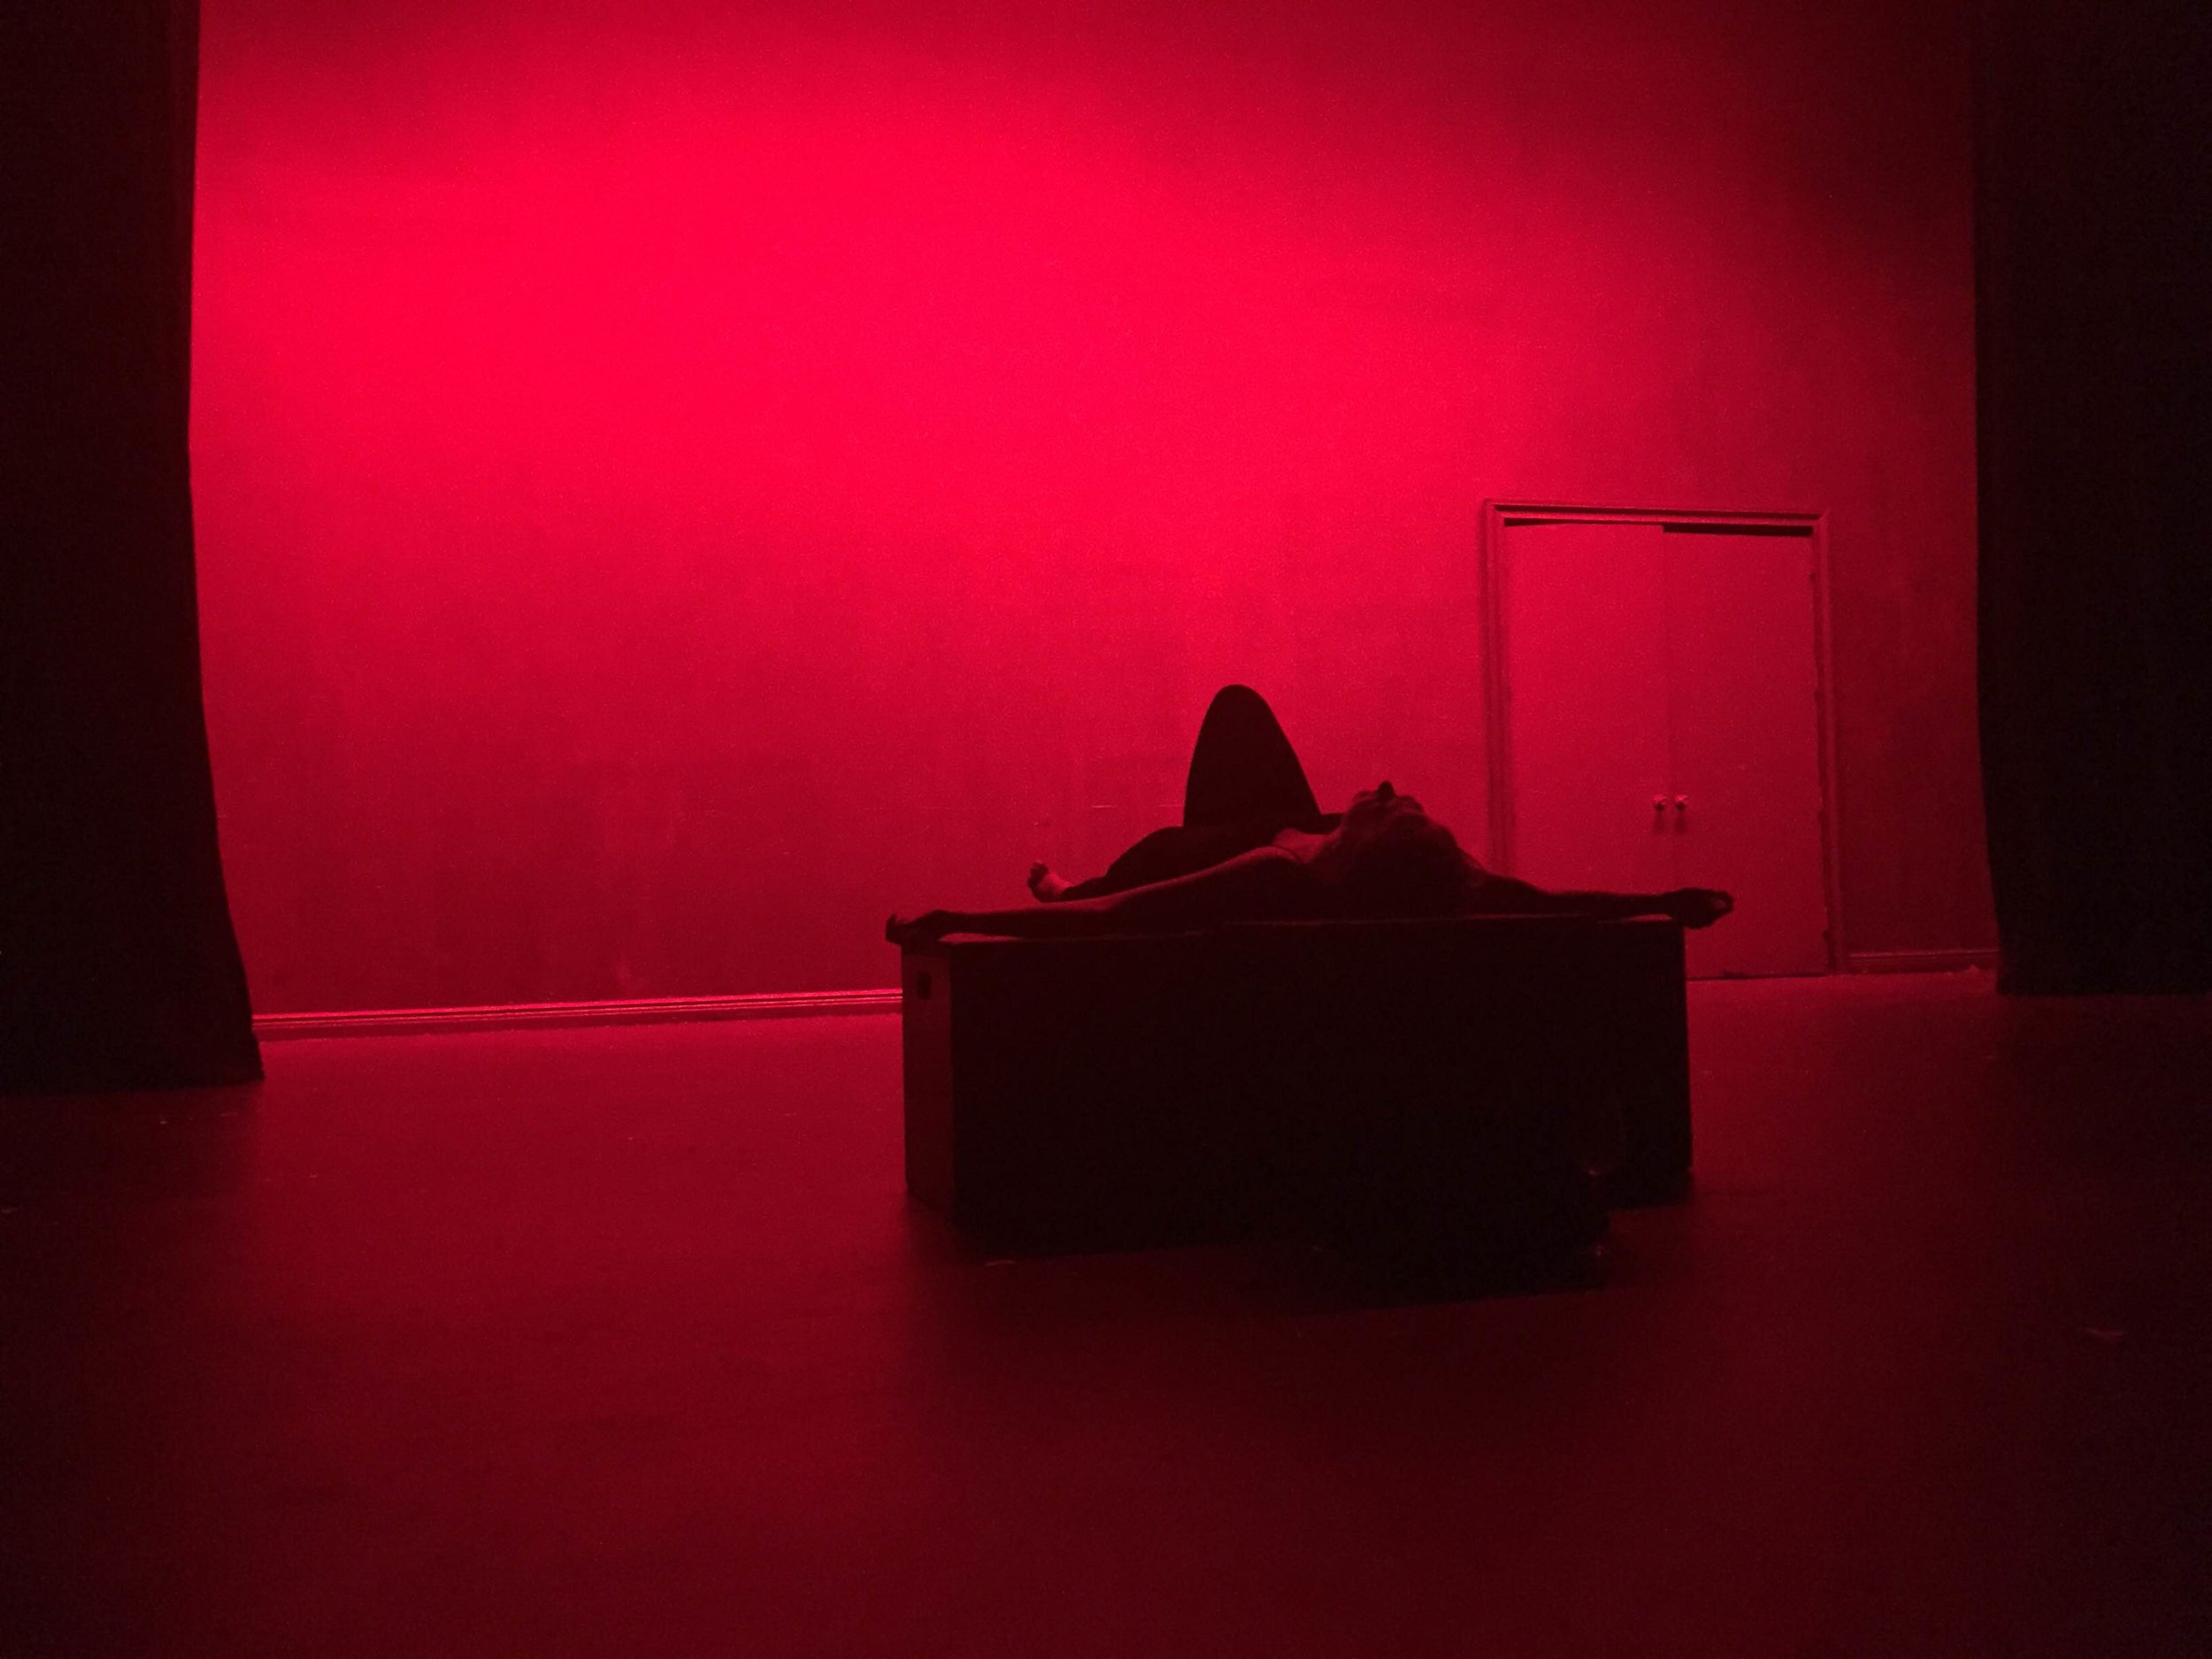 - Jesus//Natalieby Gracie Gardner, produced by the 24Hour Plays:Nationals, at The New School, 2015